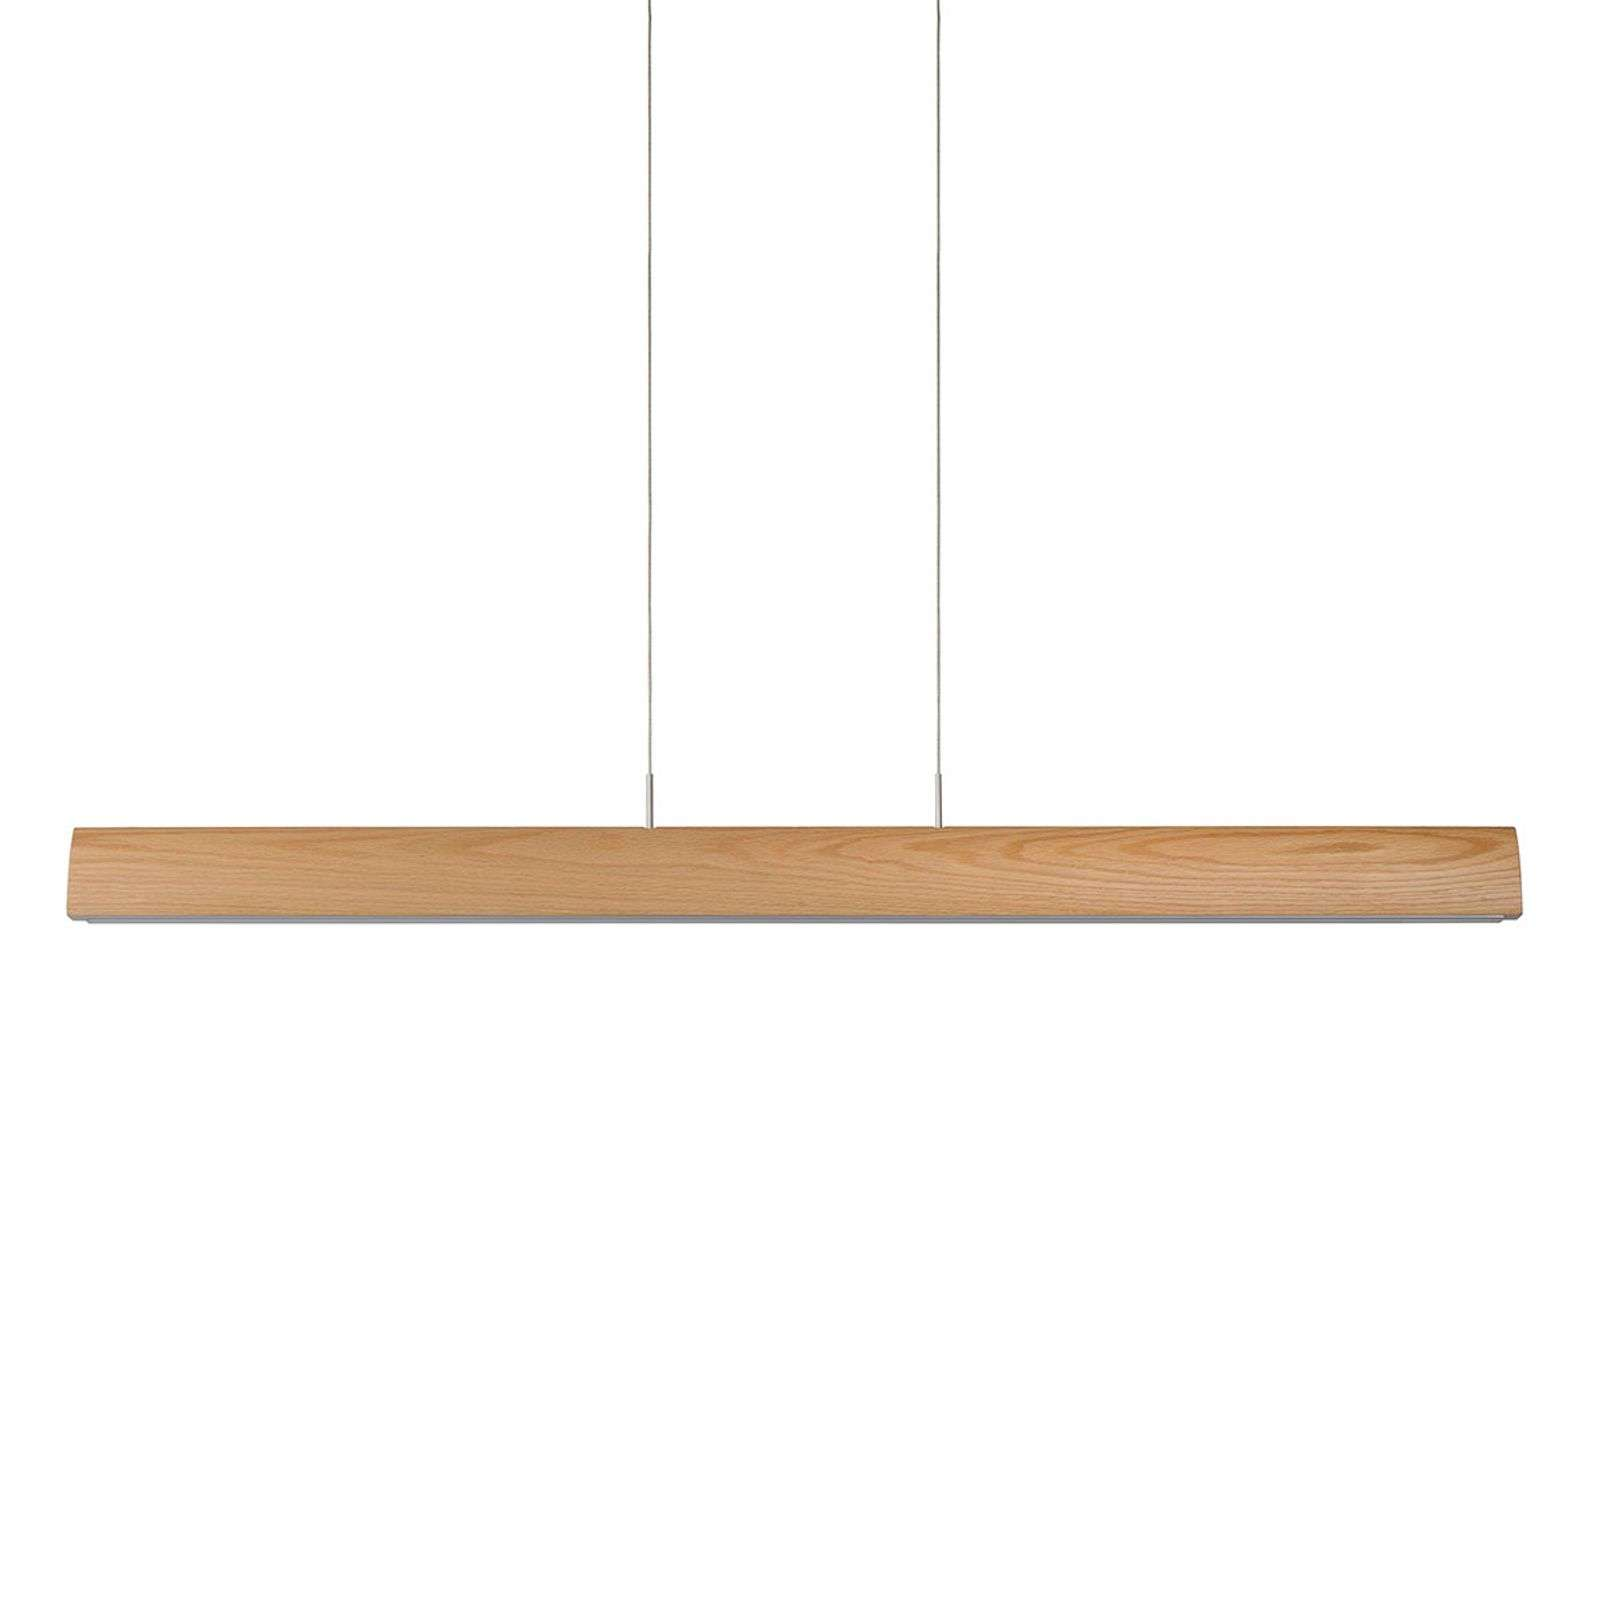 Suspension LED rectiligne Sytze en bois